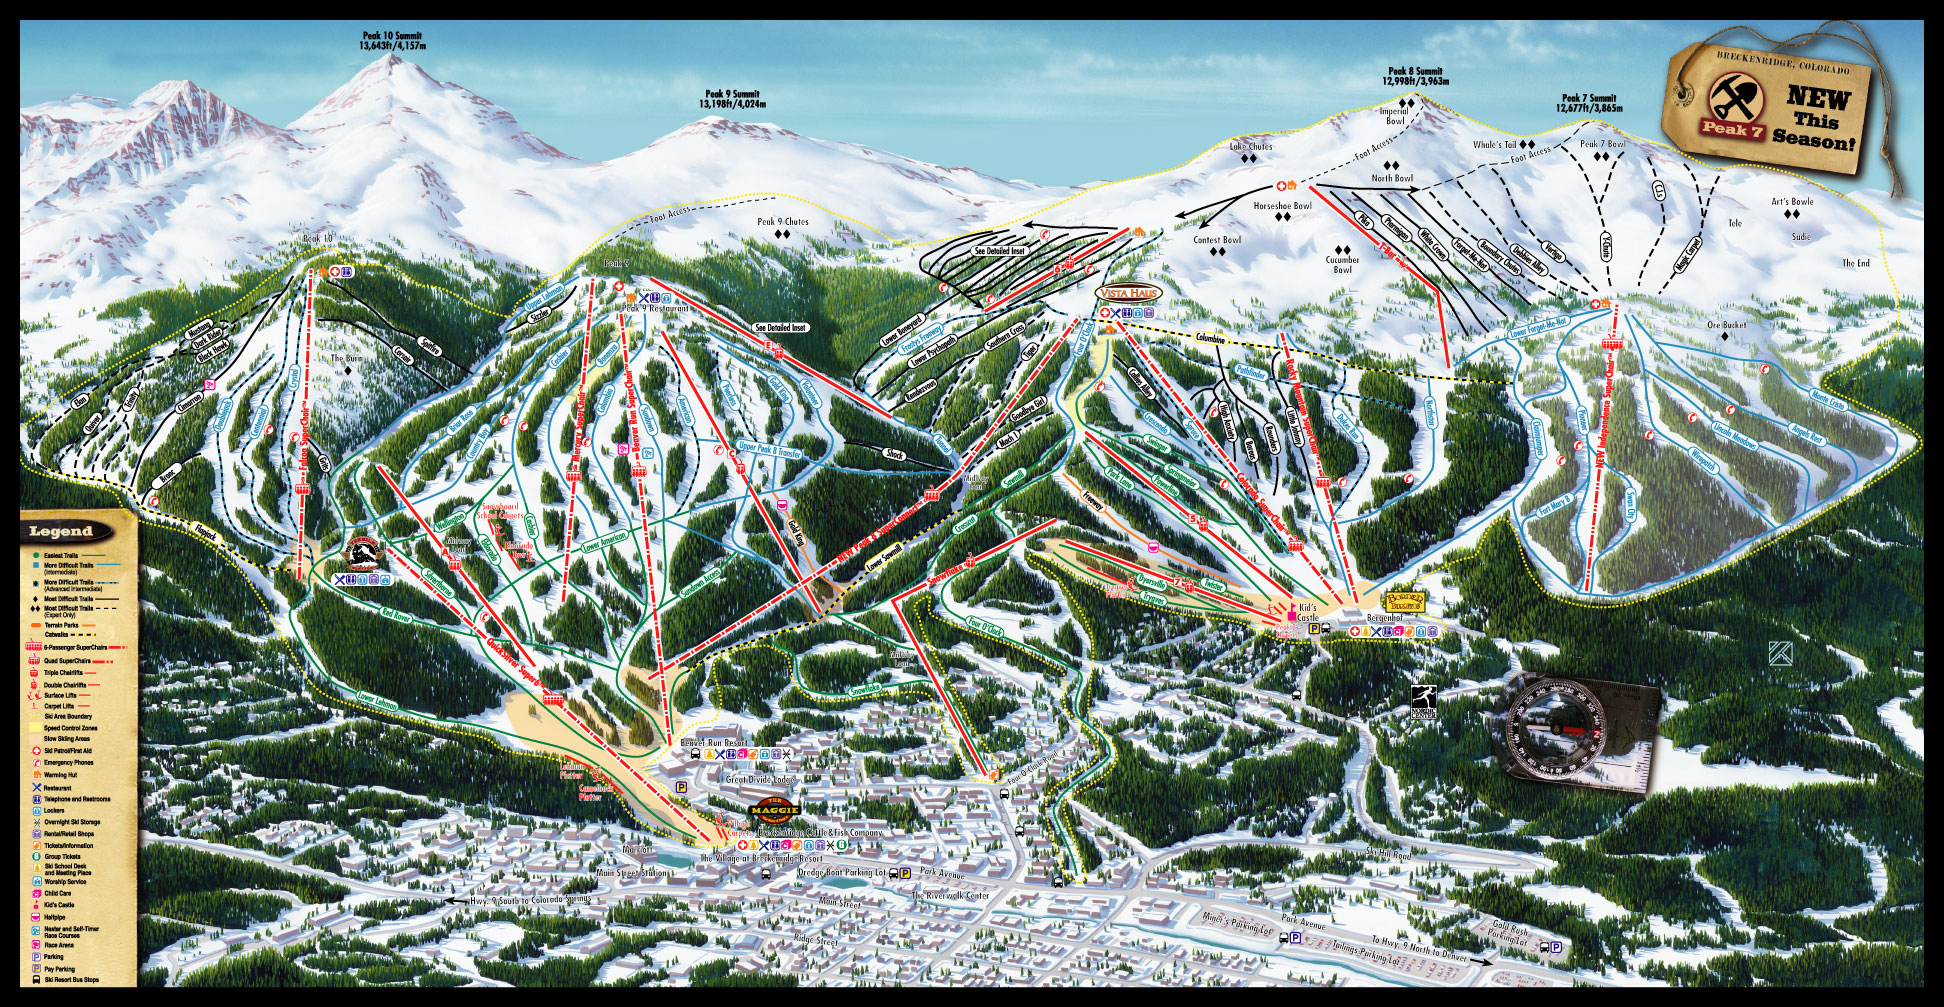 Breckenridge Ski Resort - SkiMap.org on